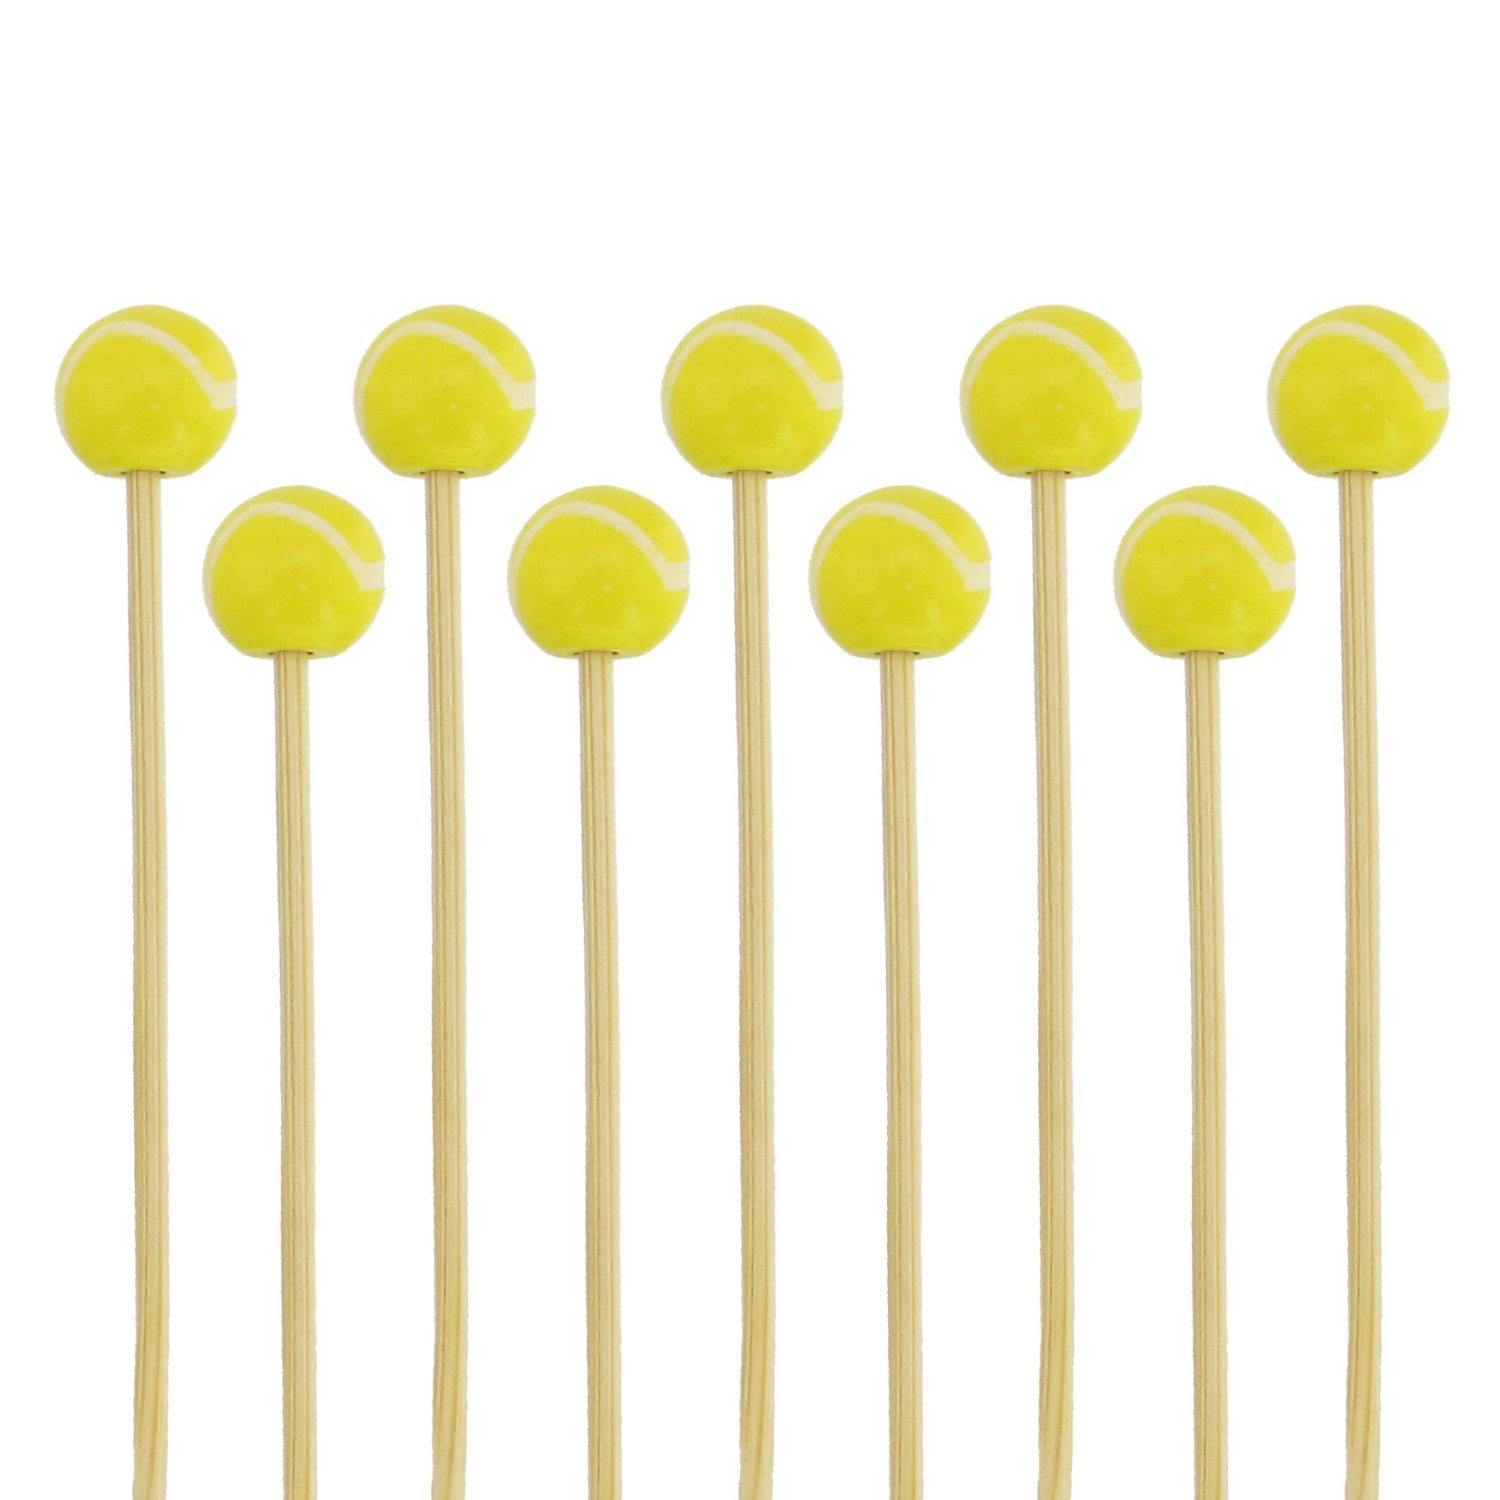 BambooMN 5.9''Decorative Sports Ball End Bamboo Cocktail Fruit Sandwich Picks Skewers for Catered Events, Holiday's, Restaurants or Buffets Party Supplies, Tennis, 100 pcs